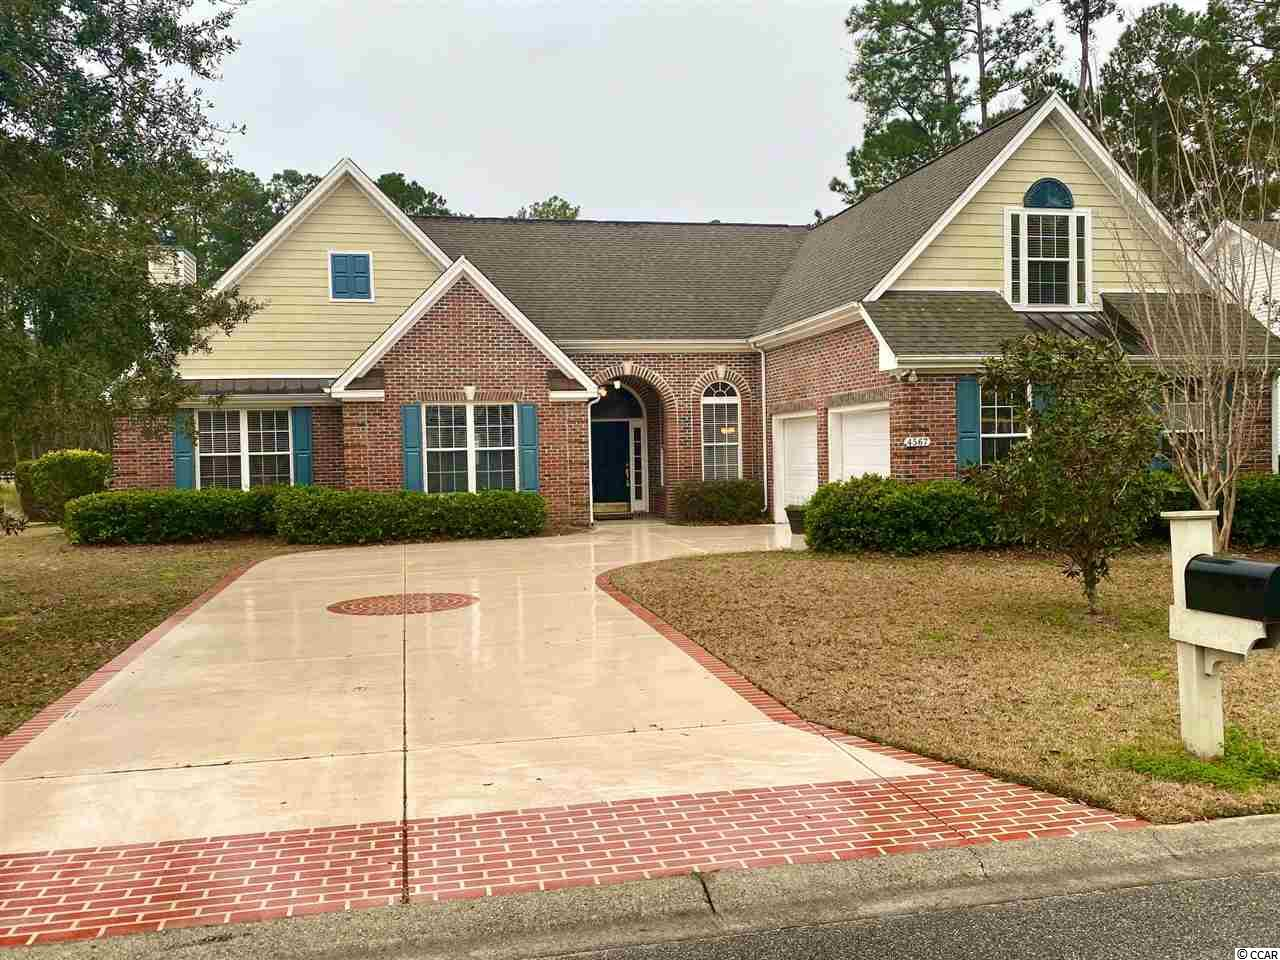 You will love this Gorgeous Brick home in Murrells Inlet with 4 large bedrooms and 3.5 Bathrooms. Located on the golf course in an executive section in Wachesaw Plantation East. The family room has vaulted ceilings and a fireplace that spills into the Carolina Room with breathtaking lake and fairway views. The large open kitchen with breakfast nook, work island, granite countertops and stainless appliances is open to the family room.  The formal dining room is accented by beautiful moldings and trey ceilings. The huge master suite is tucked away on its own wing and has its own fireplace, sitting area and private covered patio. The master bath is perfectly appointed with a large walk in closet, a private water closet, double vanities, a deep soaking tub and a walk-in shower. Wachesaw East offers a wide variety of exclusive amenities, a community pool, tennis courts, a clubhouse with an exercise room. You will be in awe walking through the beautiful trails of this gorgeous treelined community with outdoor work out stations, 24 hour gated guarded security and the gorgeous 18 hole signature golf course. The Waccawachee Boat Ramp and Marina is just down the street from the back gate. Close to Tidelands Hospital, Restaurants, shops and world class entertainment in the Murrells Inlet Marshwalk!